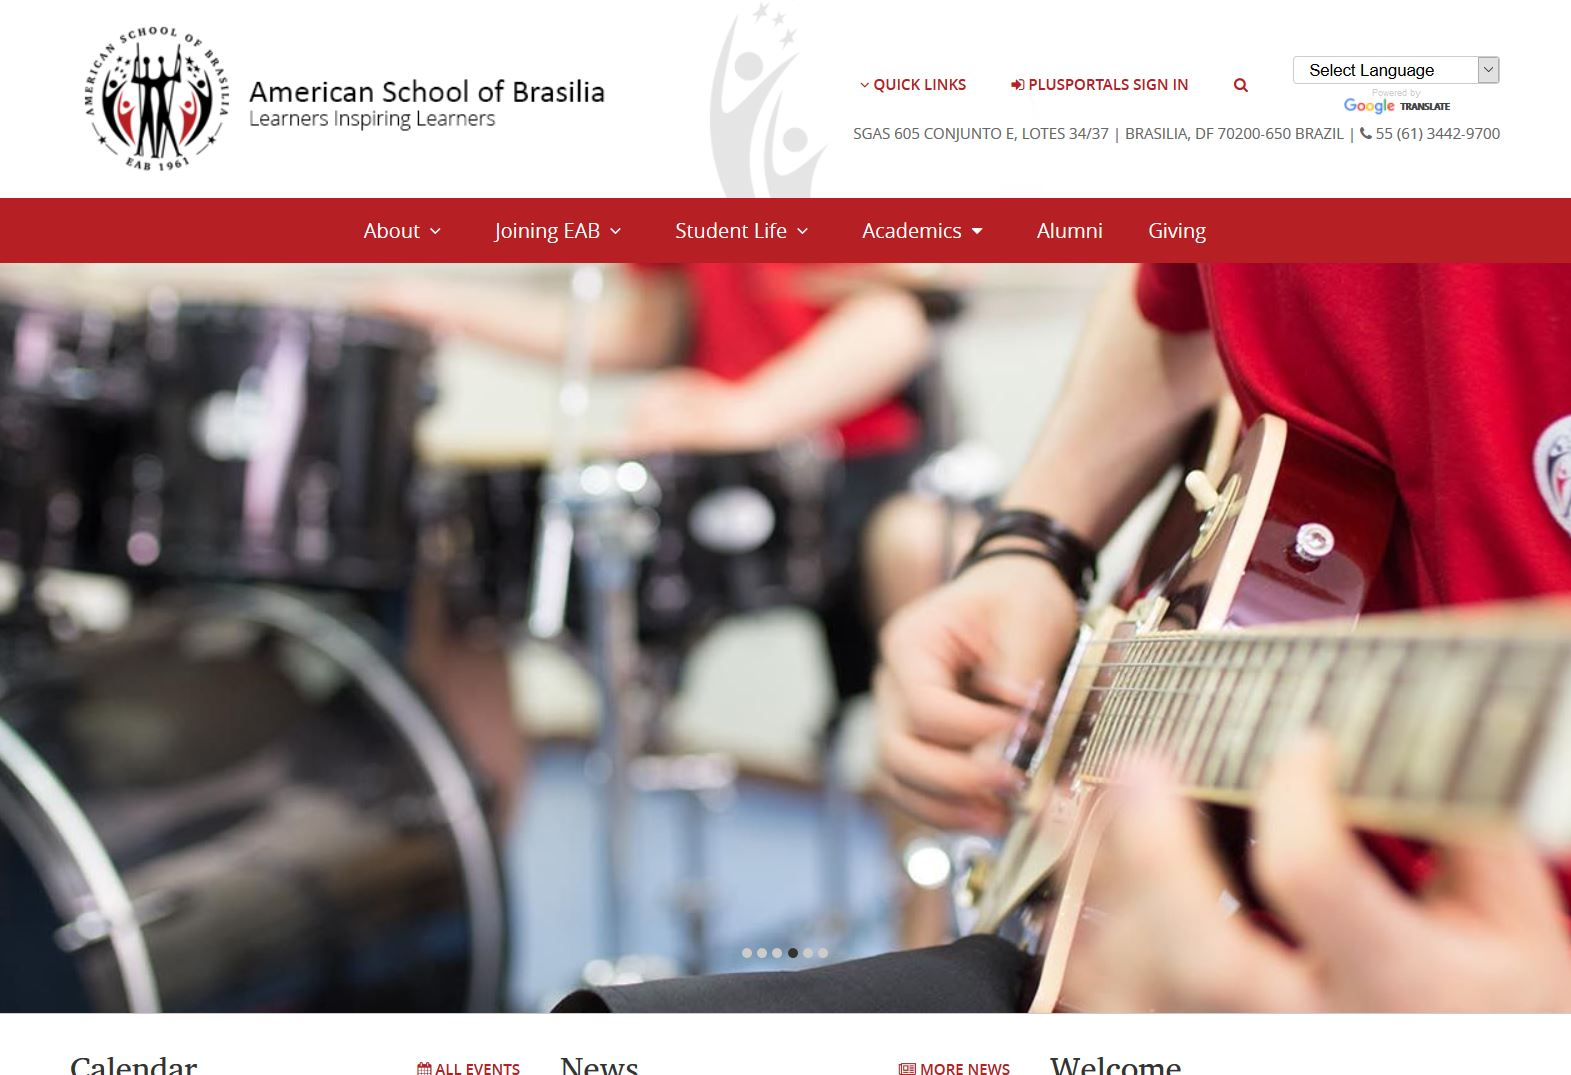 American School of Brasilia Website Screen